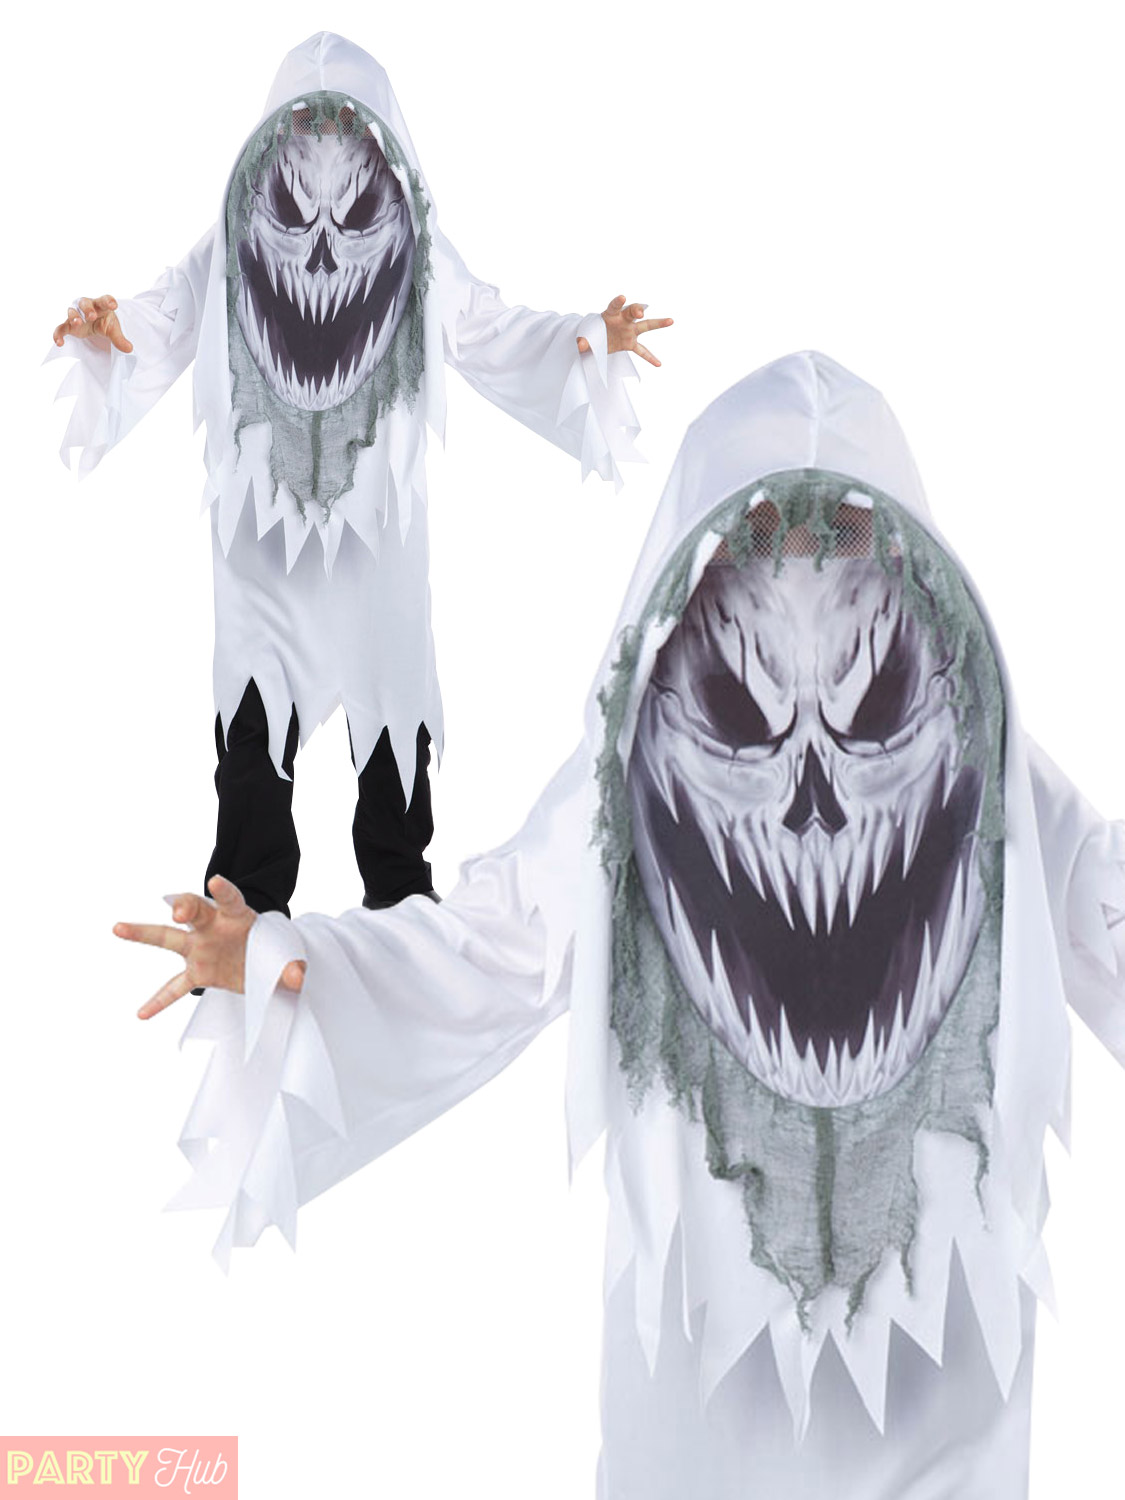 Boys-Mad-Creeper-Zombie-Reaper-Horror-Halloween-Costume-Kids-Child-Fancy-Dress